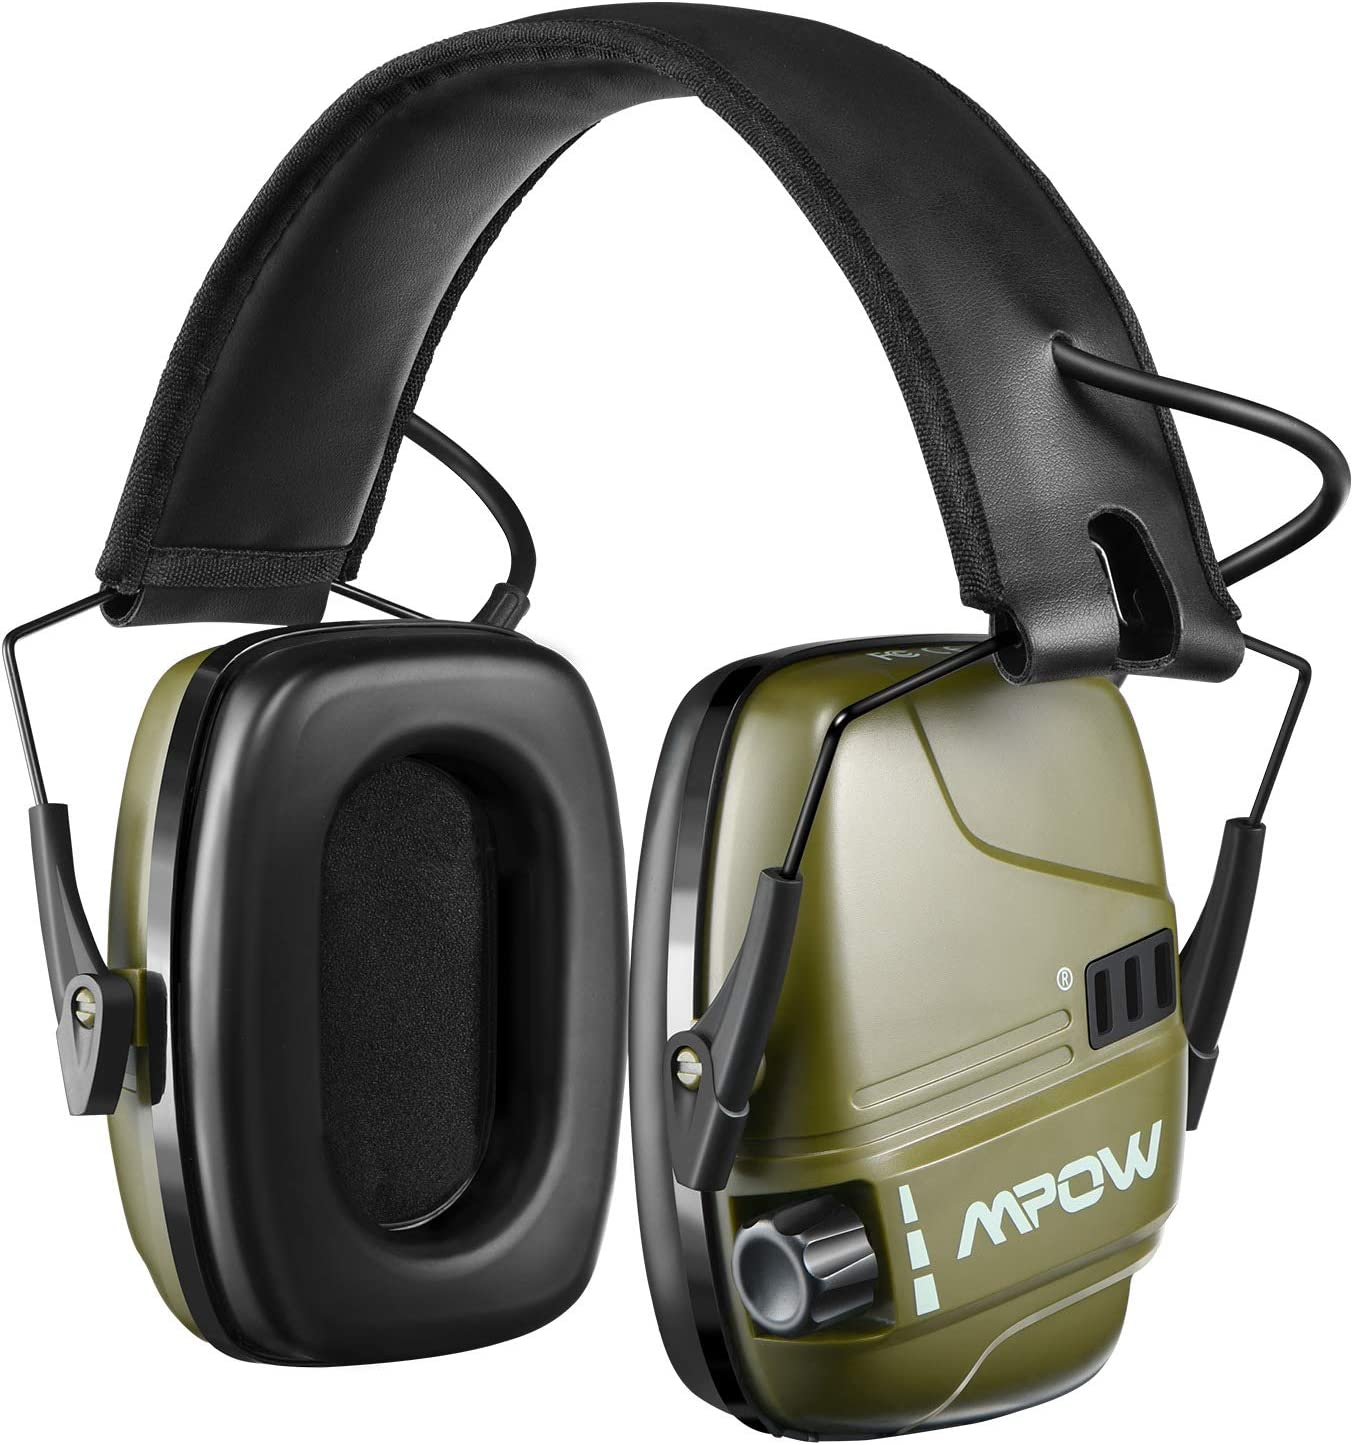 HP094A Electronic Shooting Ear Protection, Rechargeable Earmuffs 30Hrs Playtime, Sound Amplification & Auto Cut Off, NRR 22dB Ear Muffs Noise Reduction, Hunting, Mowing, Woodworking